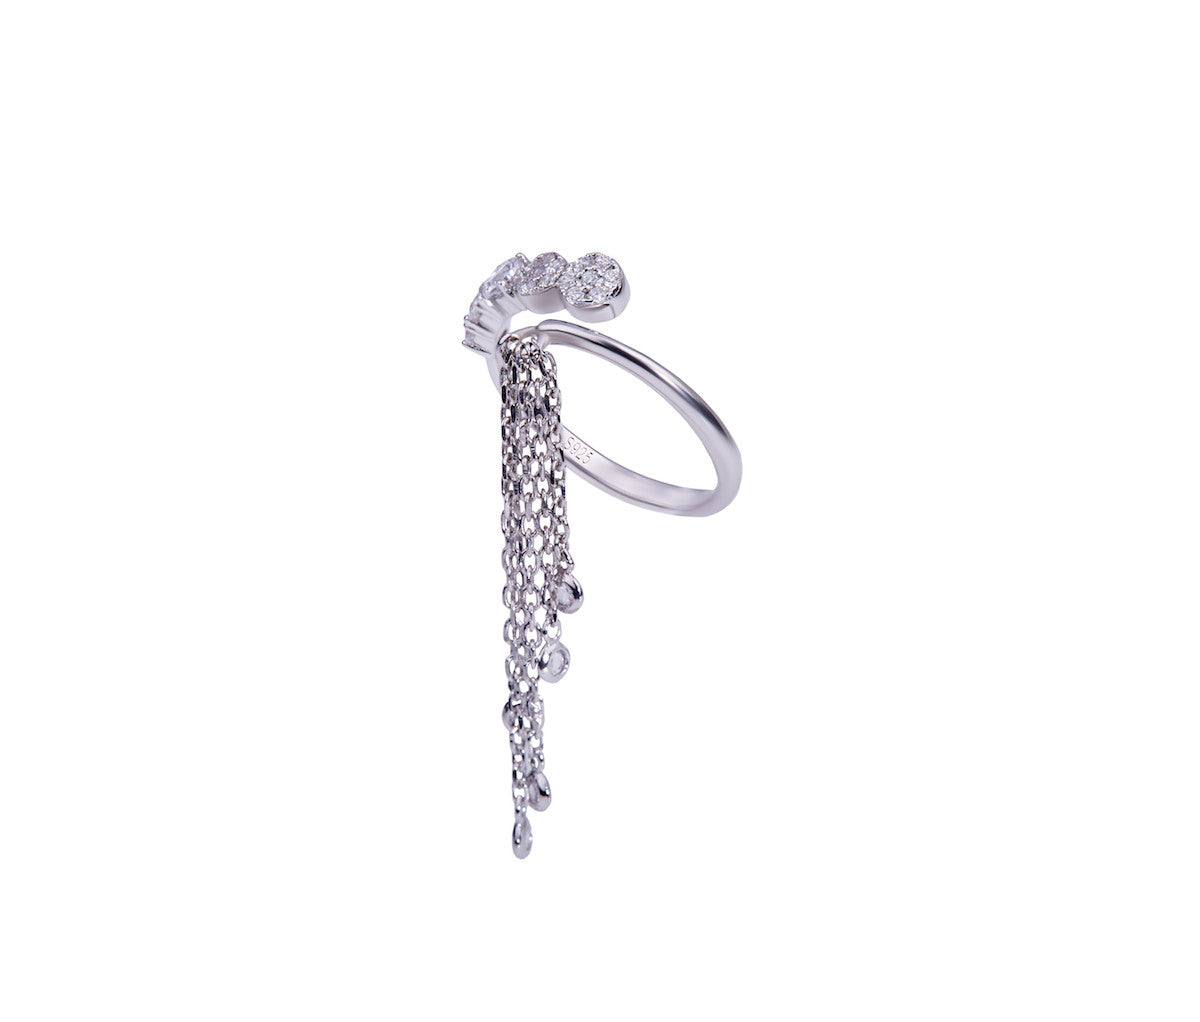 Silver Open Ring with a Tassel Charm